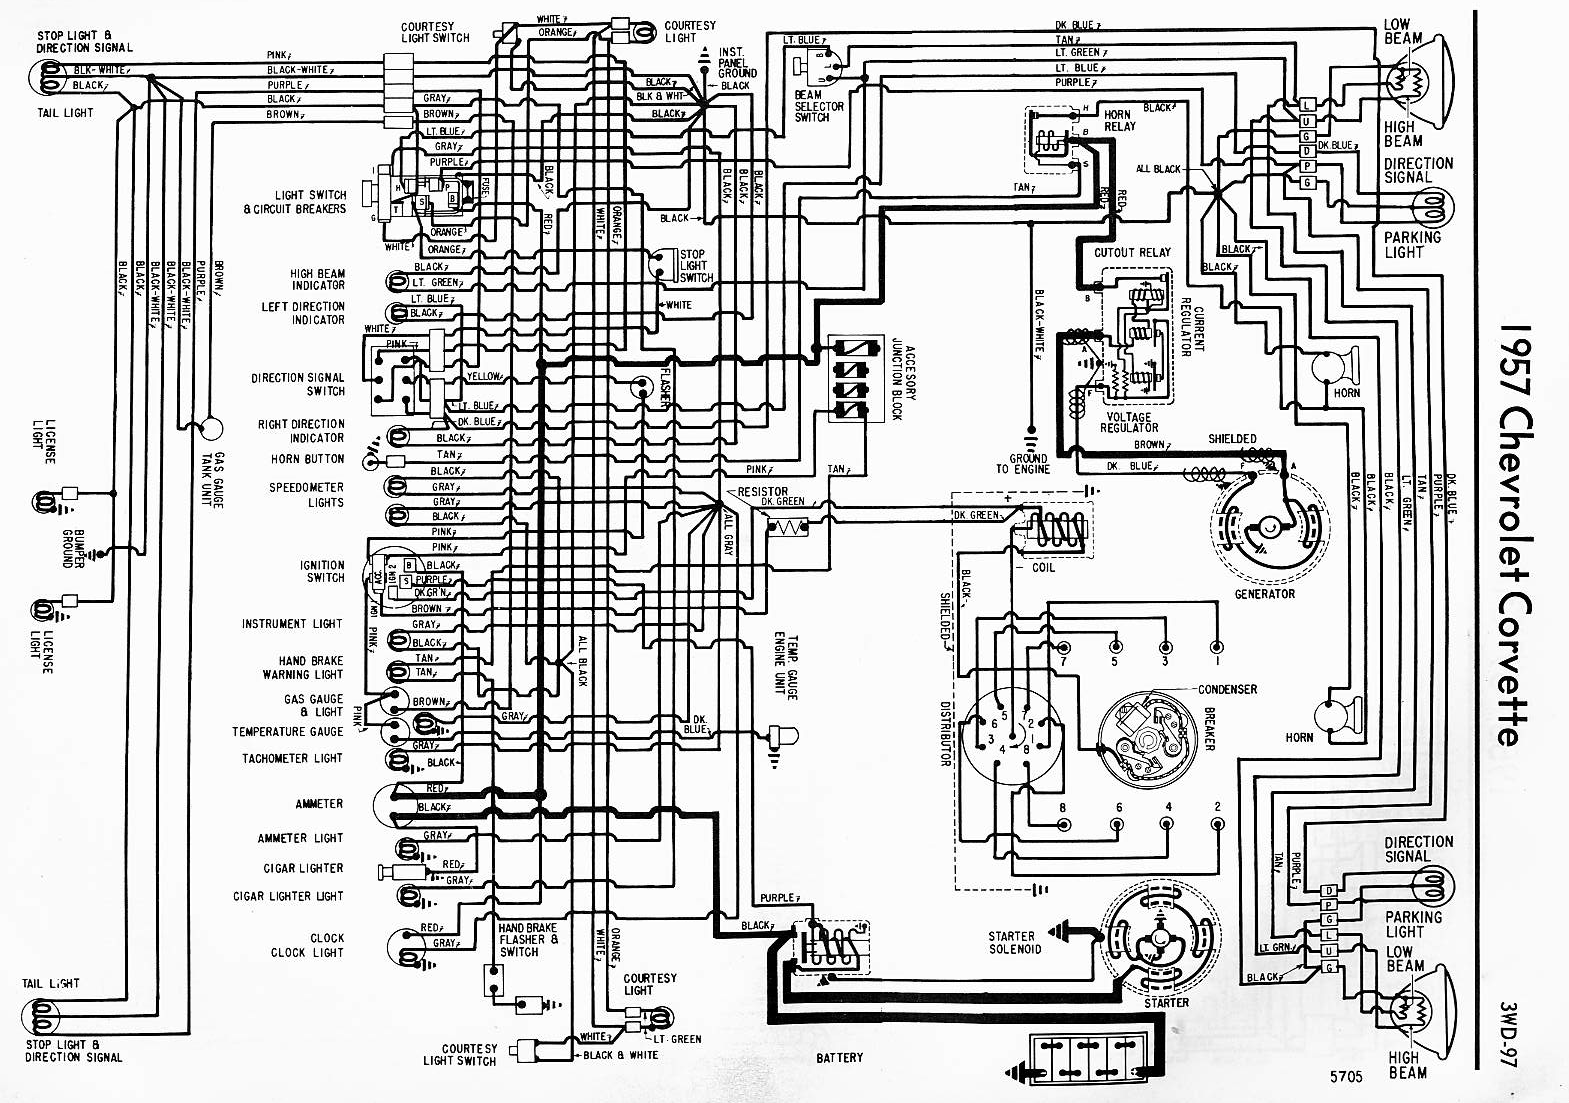 corvette wiring diagrams online circuit wiring diagram u2022 rh electrobuddha co uk 1988 corvette stereo wiring diagram 1988 corvette engine wiring diagram